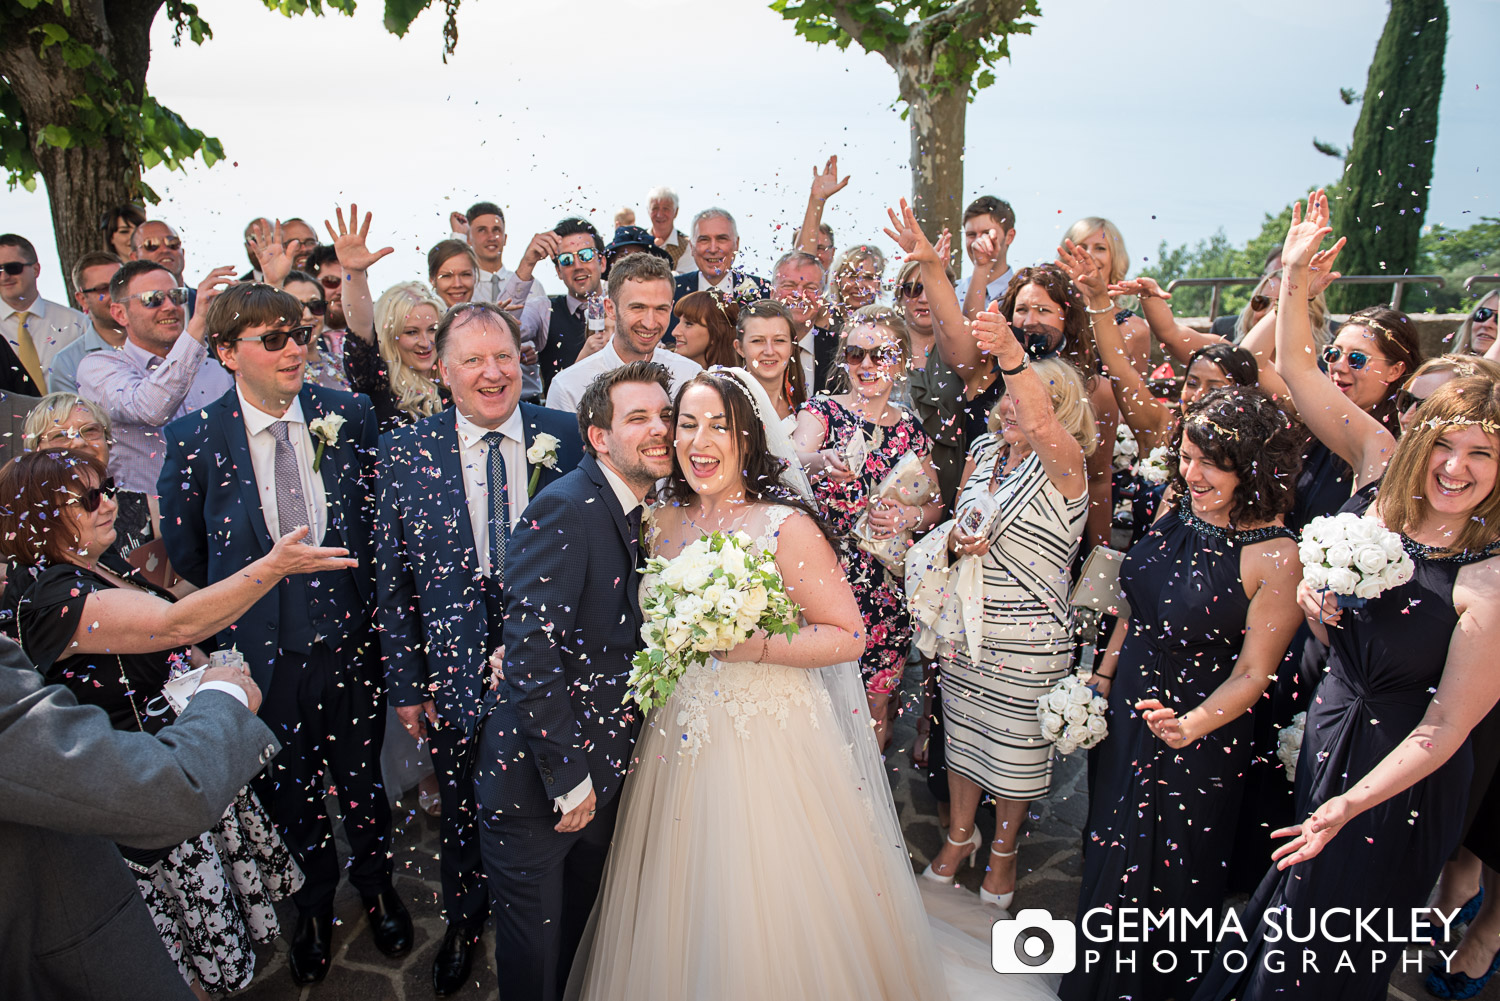 wedding guests throwing confetti at bride and groom